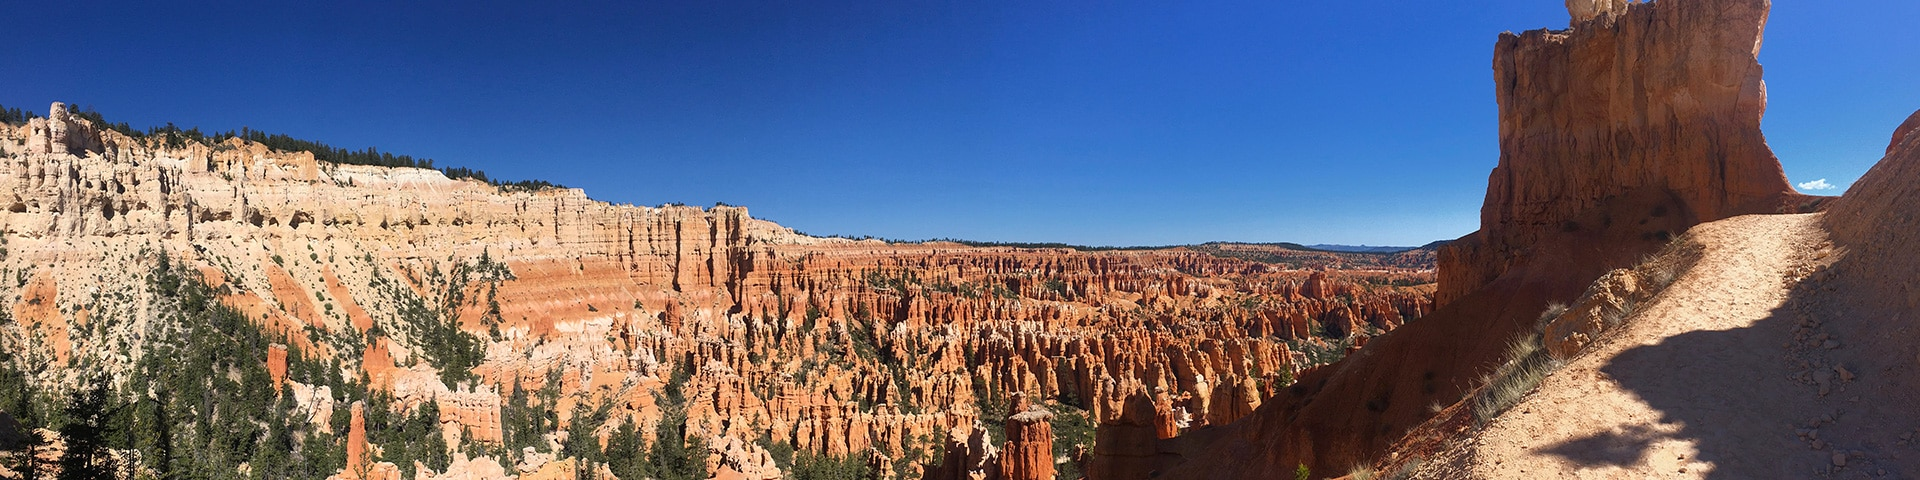 Peek-A-Boo Loop Trail hike in Bryce Canyon National Park has beautiful panoramic views